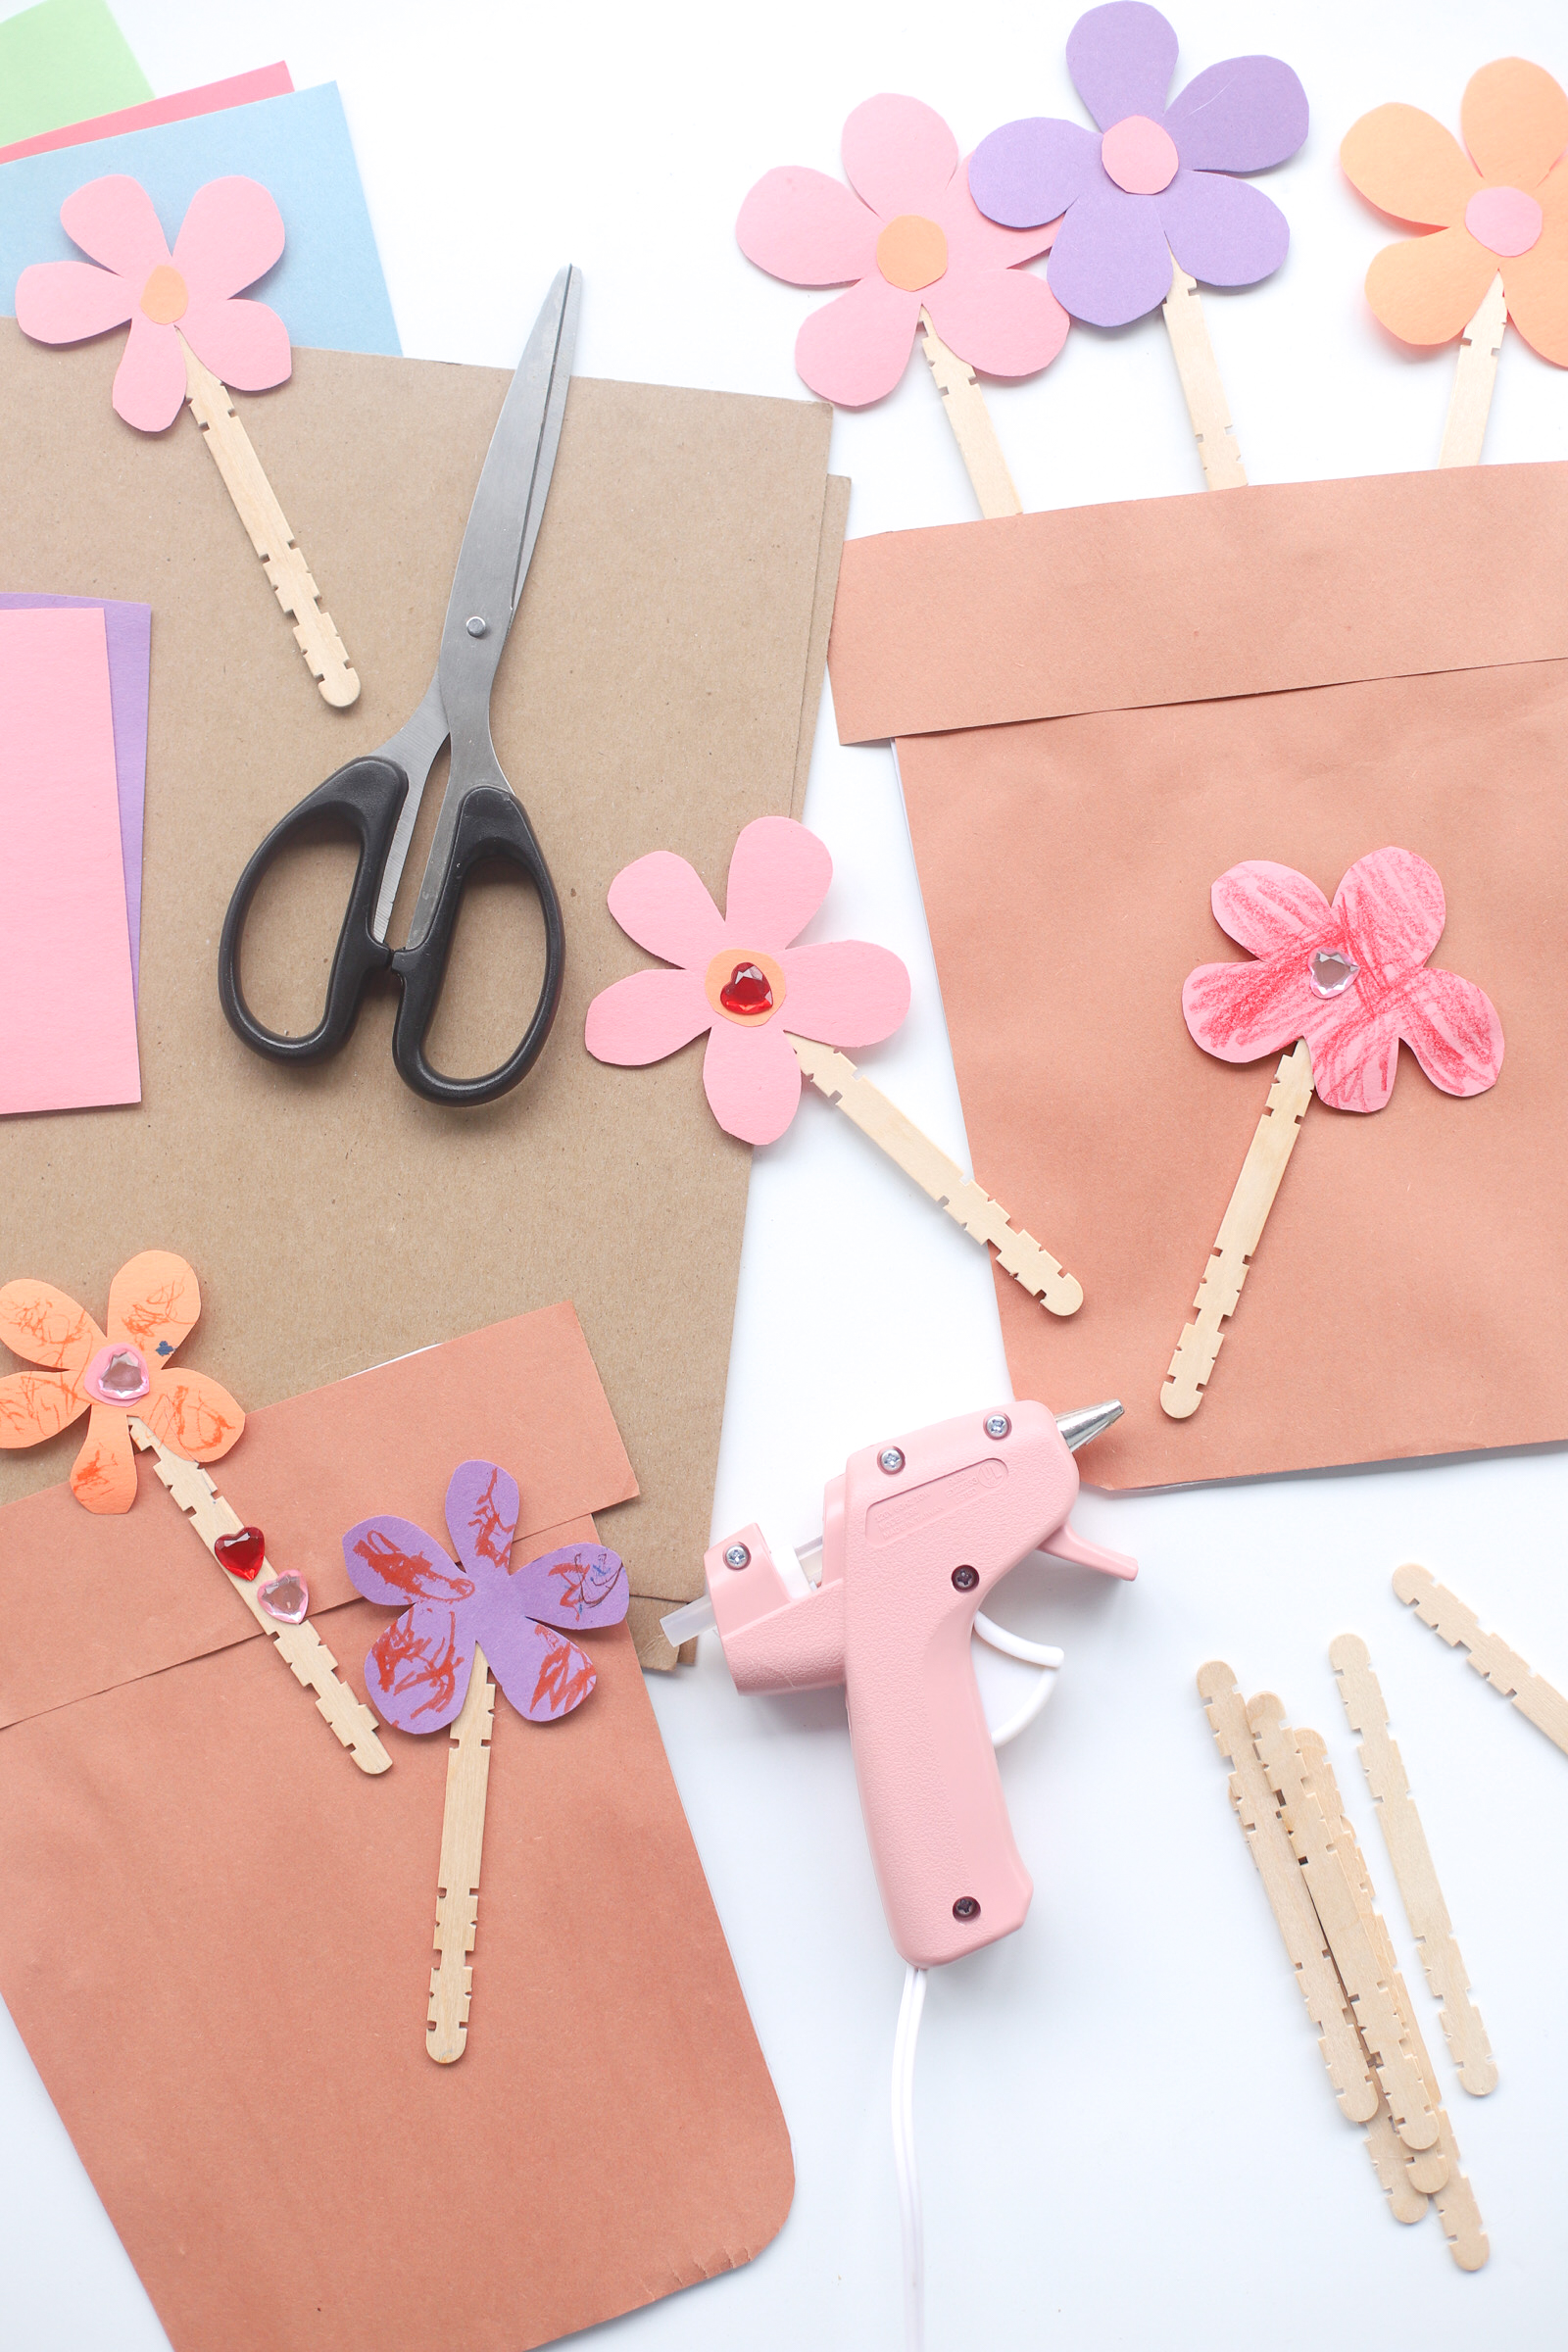 Make easy DIY Cardboard Construction Paper Flower Pots with your kids using things you most likely have at home. This adorable craft is also a perfect Mother's Day gift! | glitterinc.com | @glitterinc